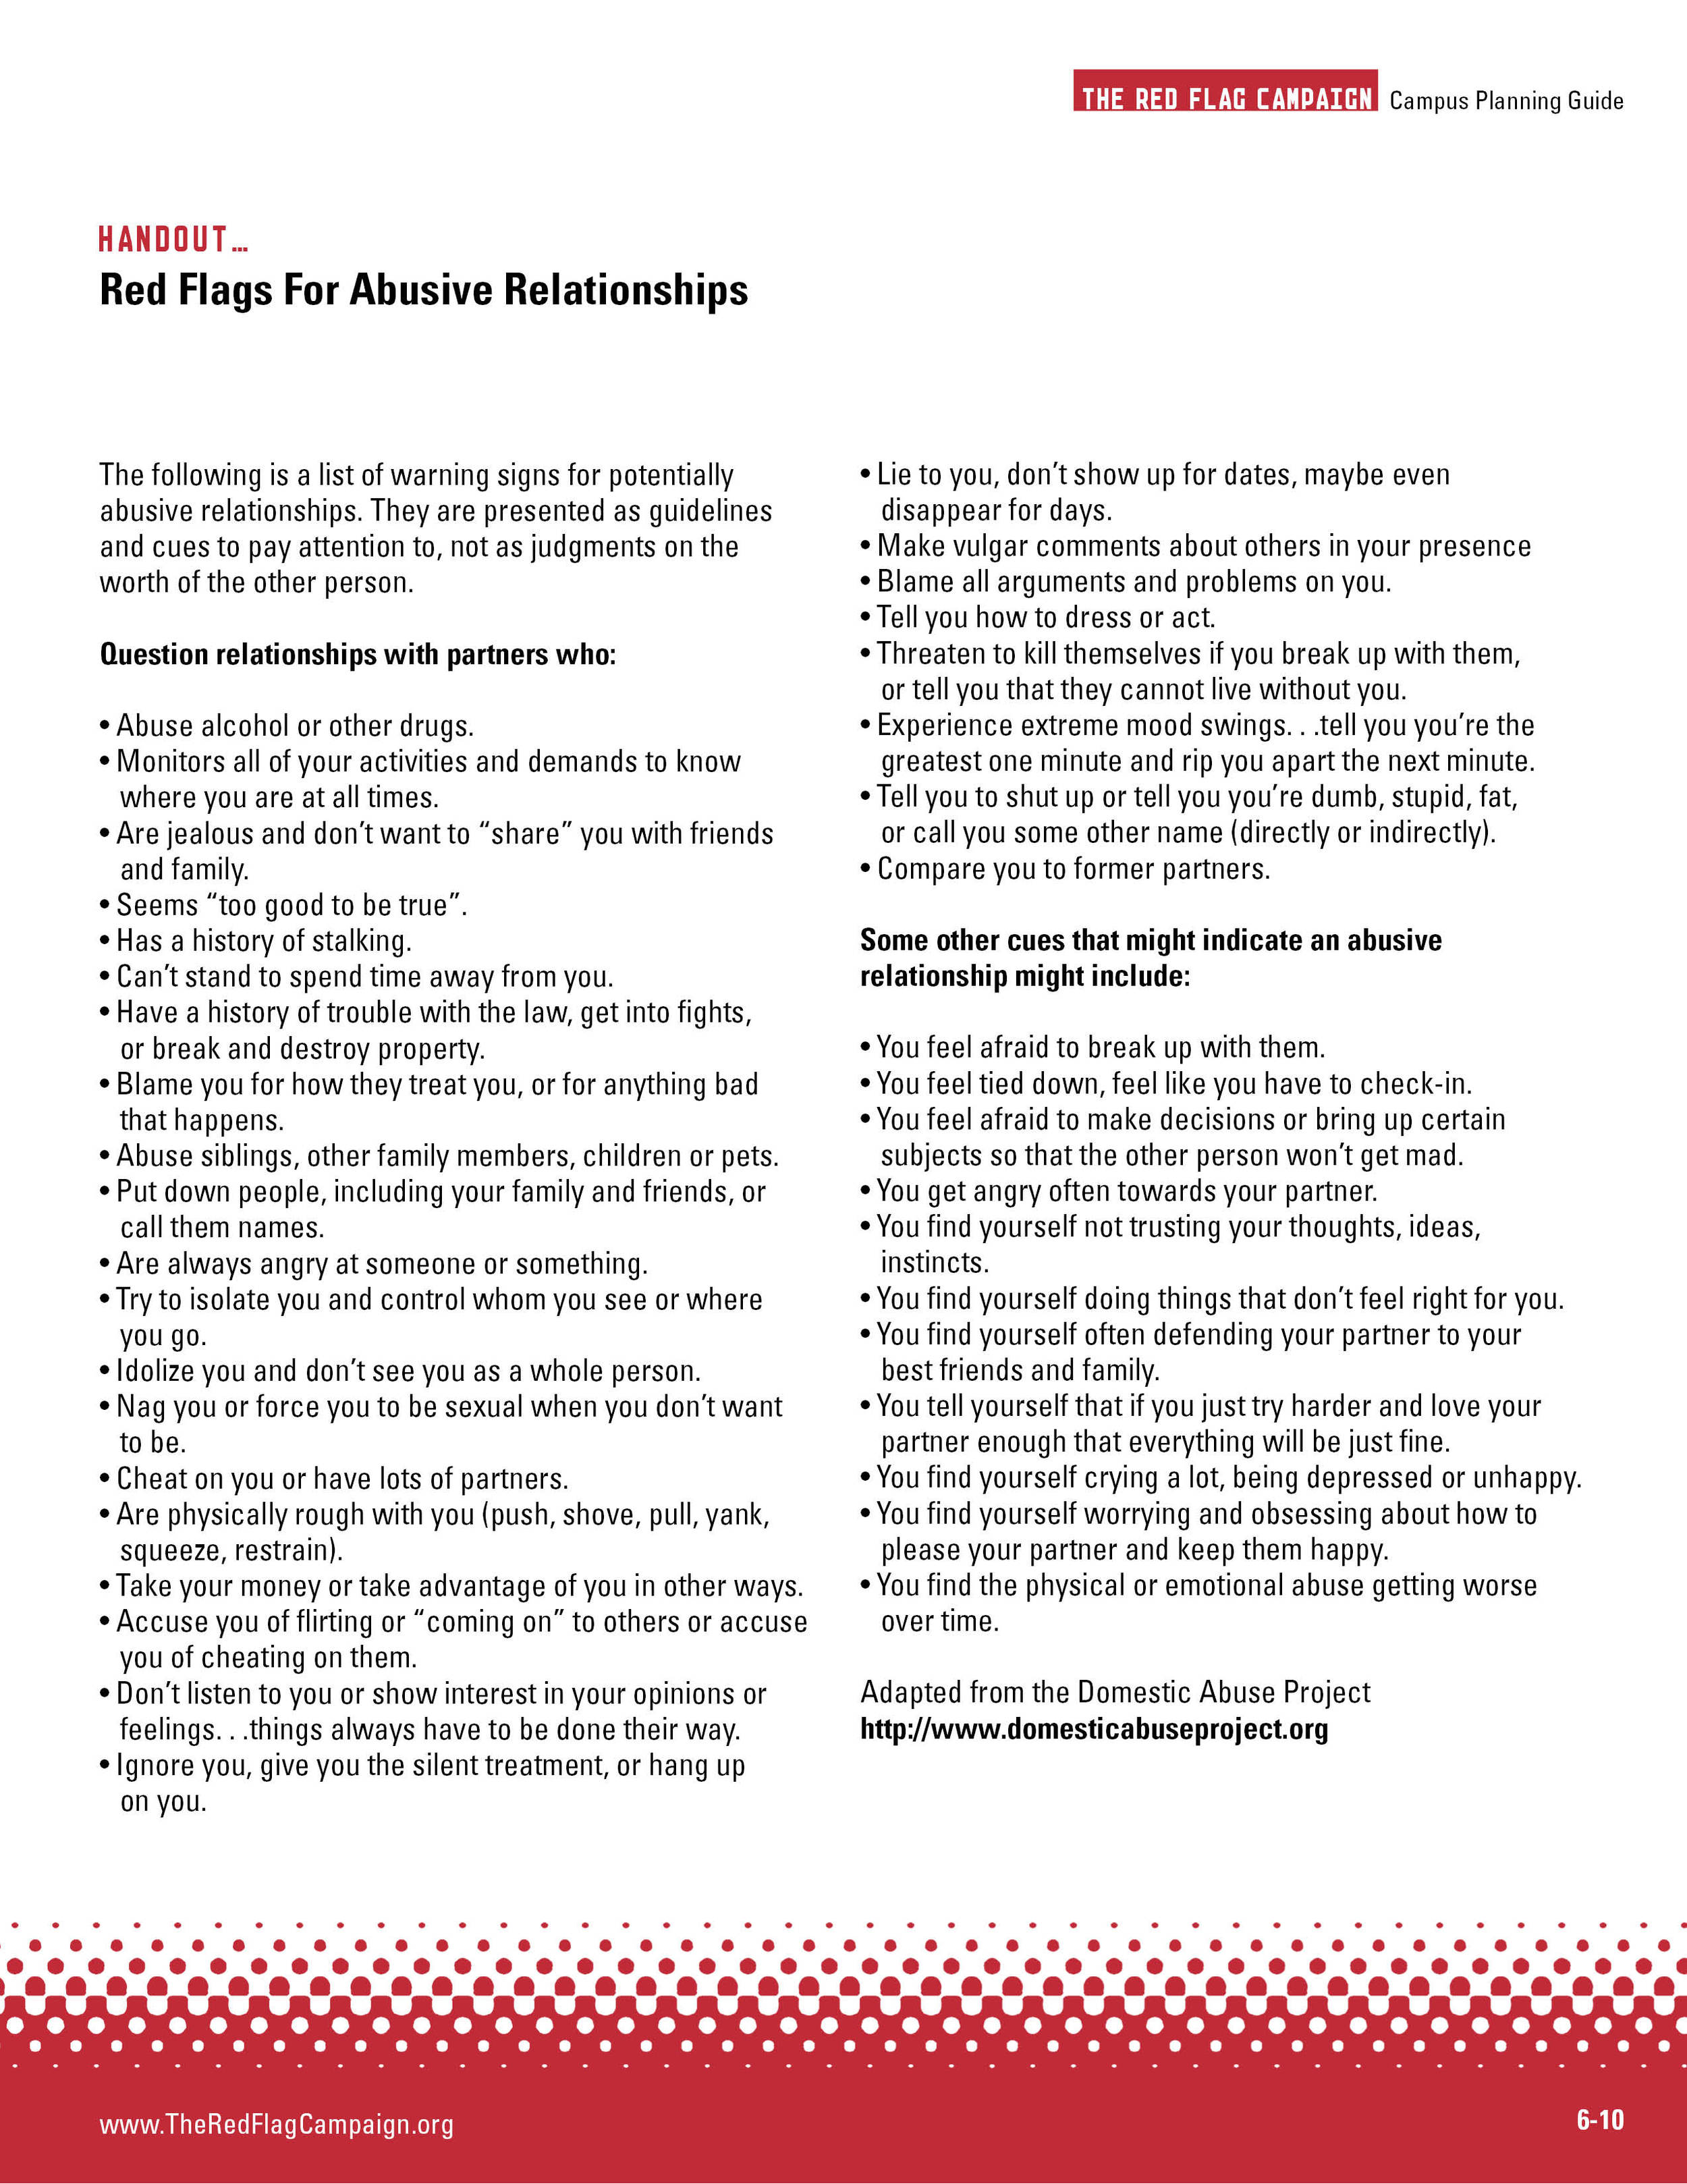 Red Flags for Abusive Relationships